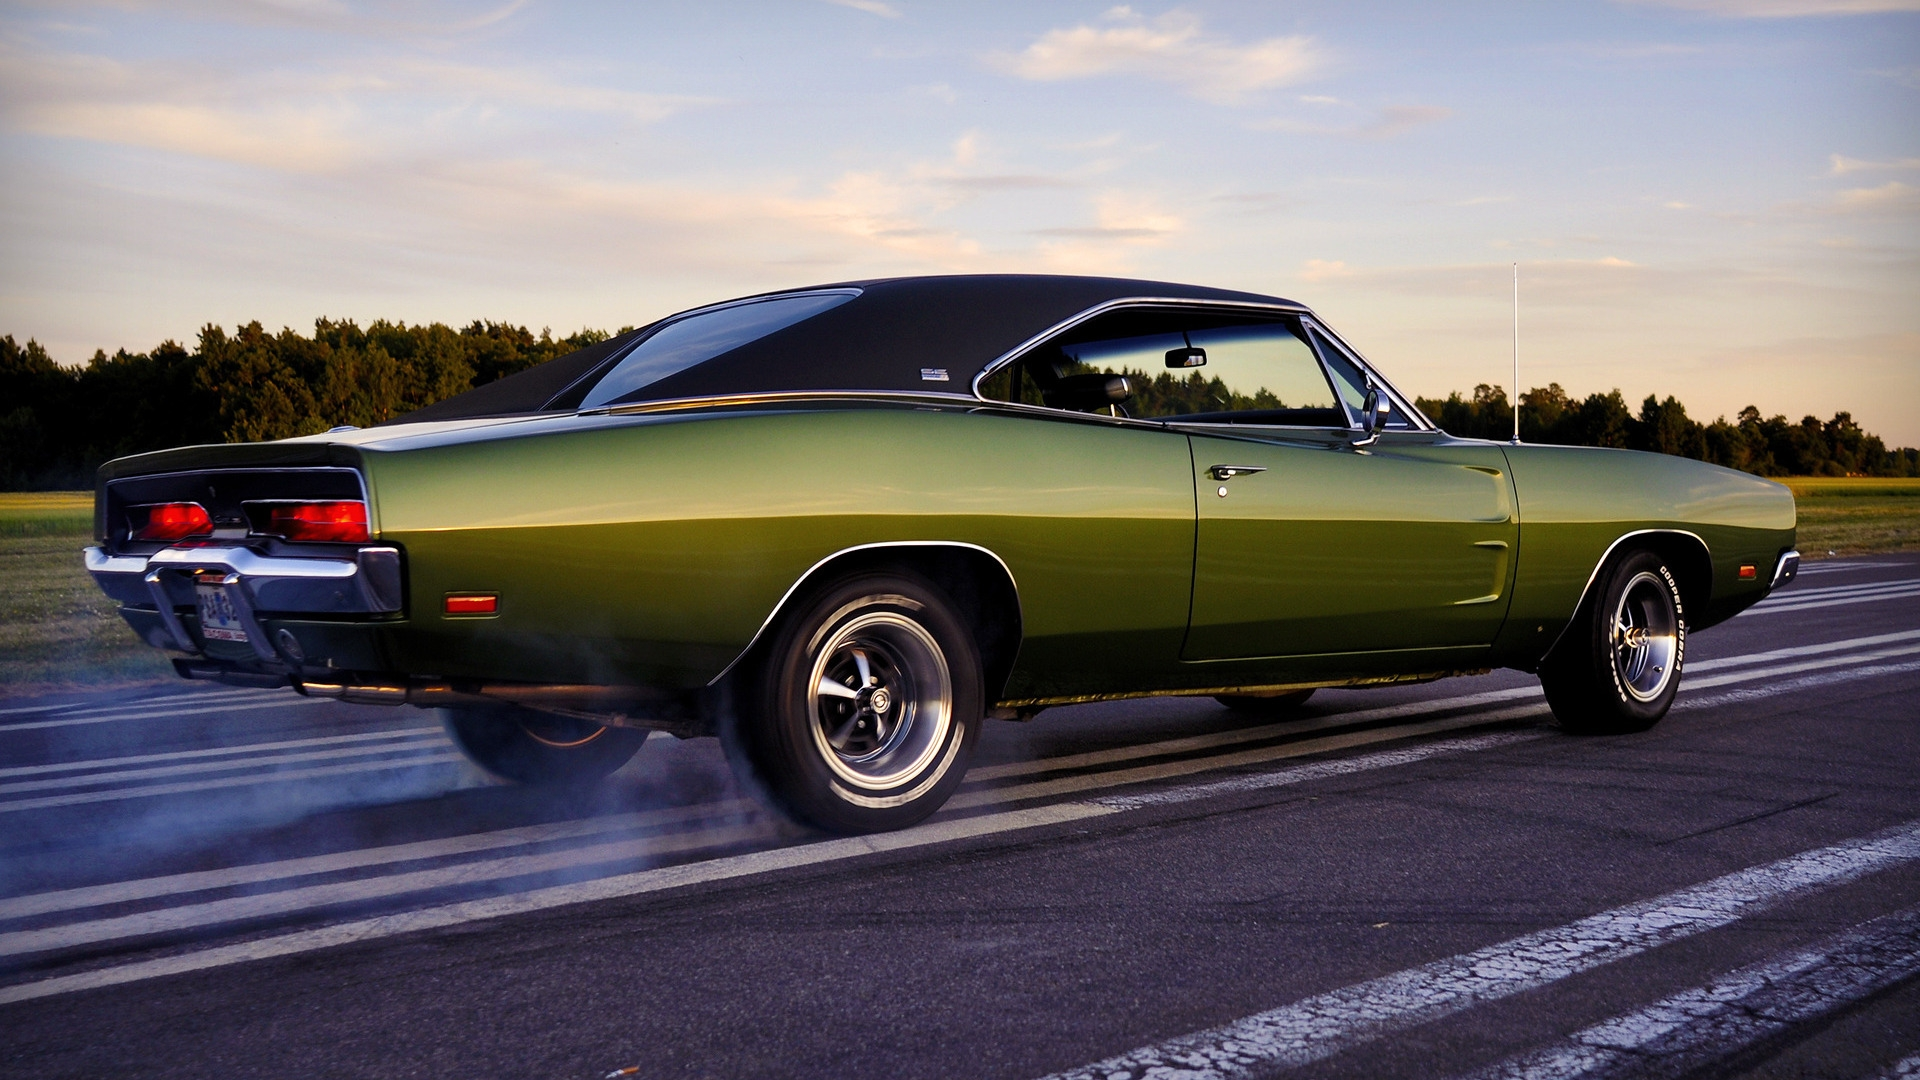 HD Wallpapers HD 1080p Desktop Wallpapers dodge charger muscle car 1920x1080